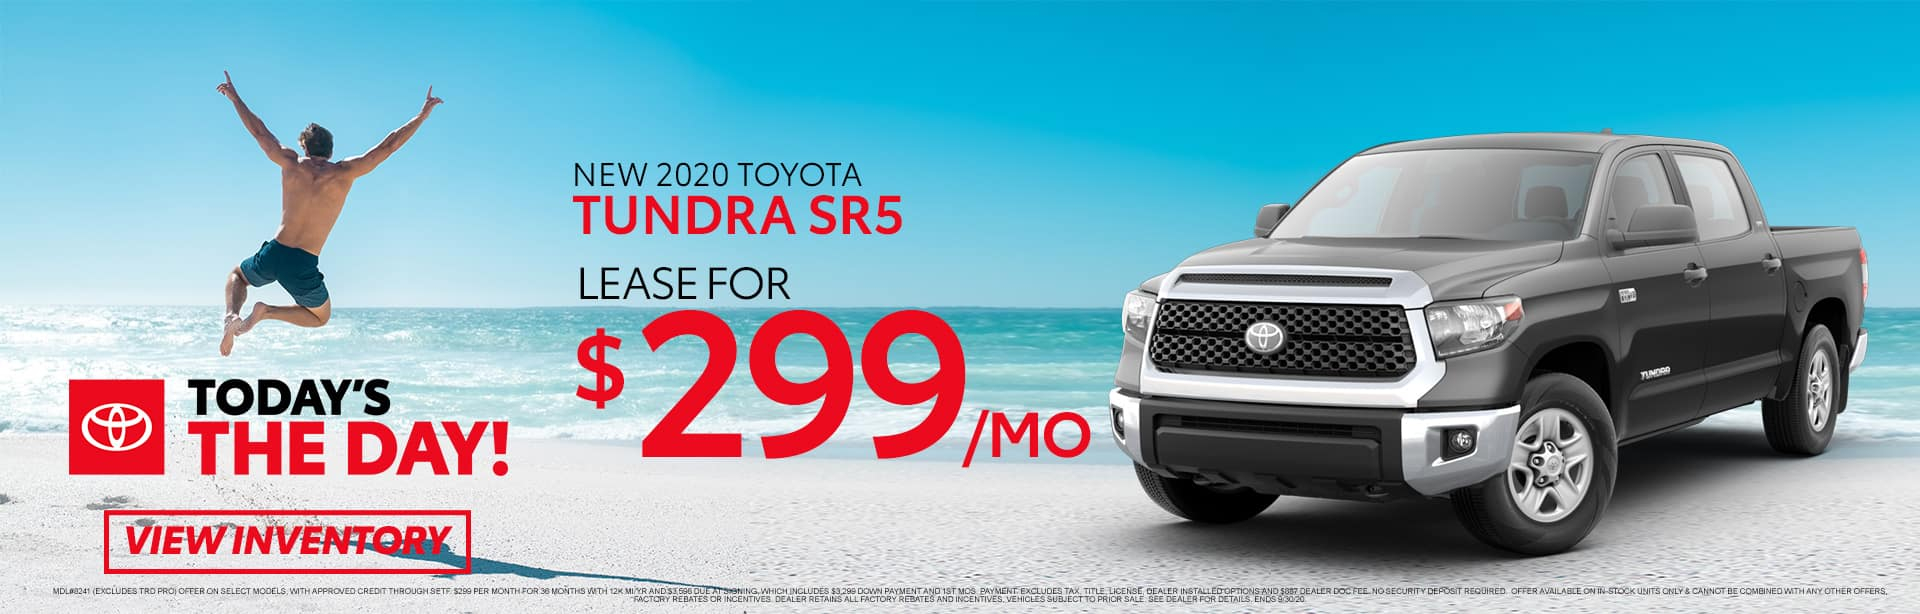 New 2020 Toyota Tundra at Toyota of Fort Walton Beach!